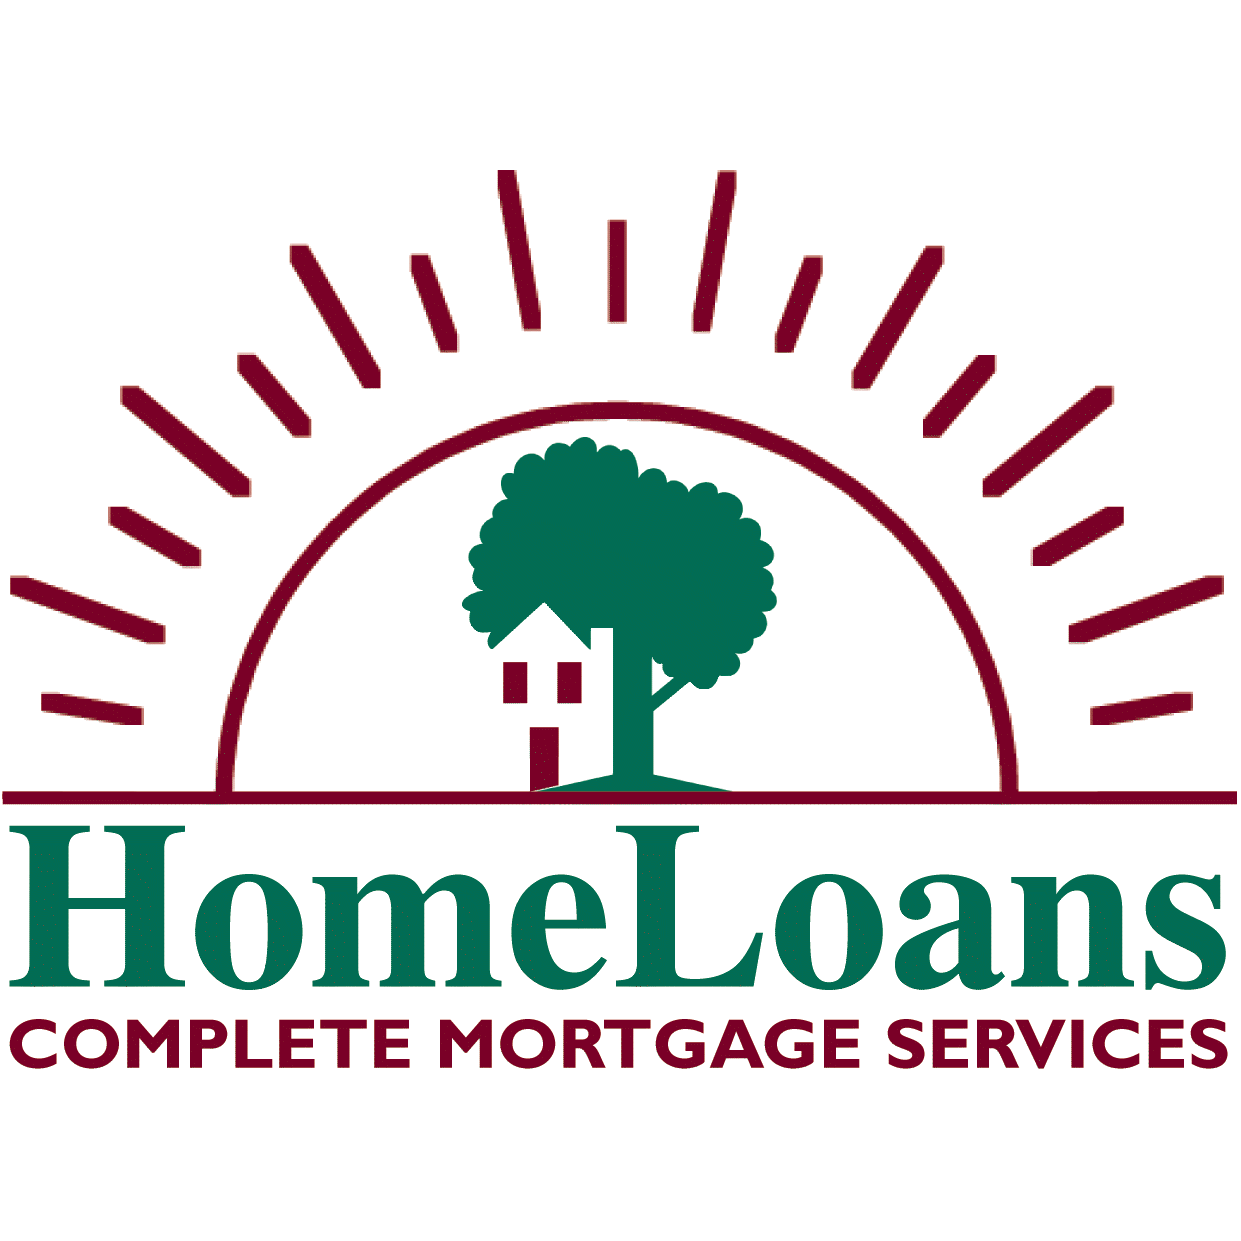 James Lawler Mortgages